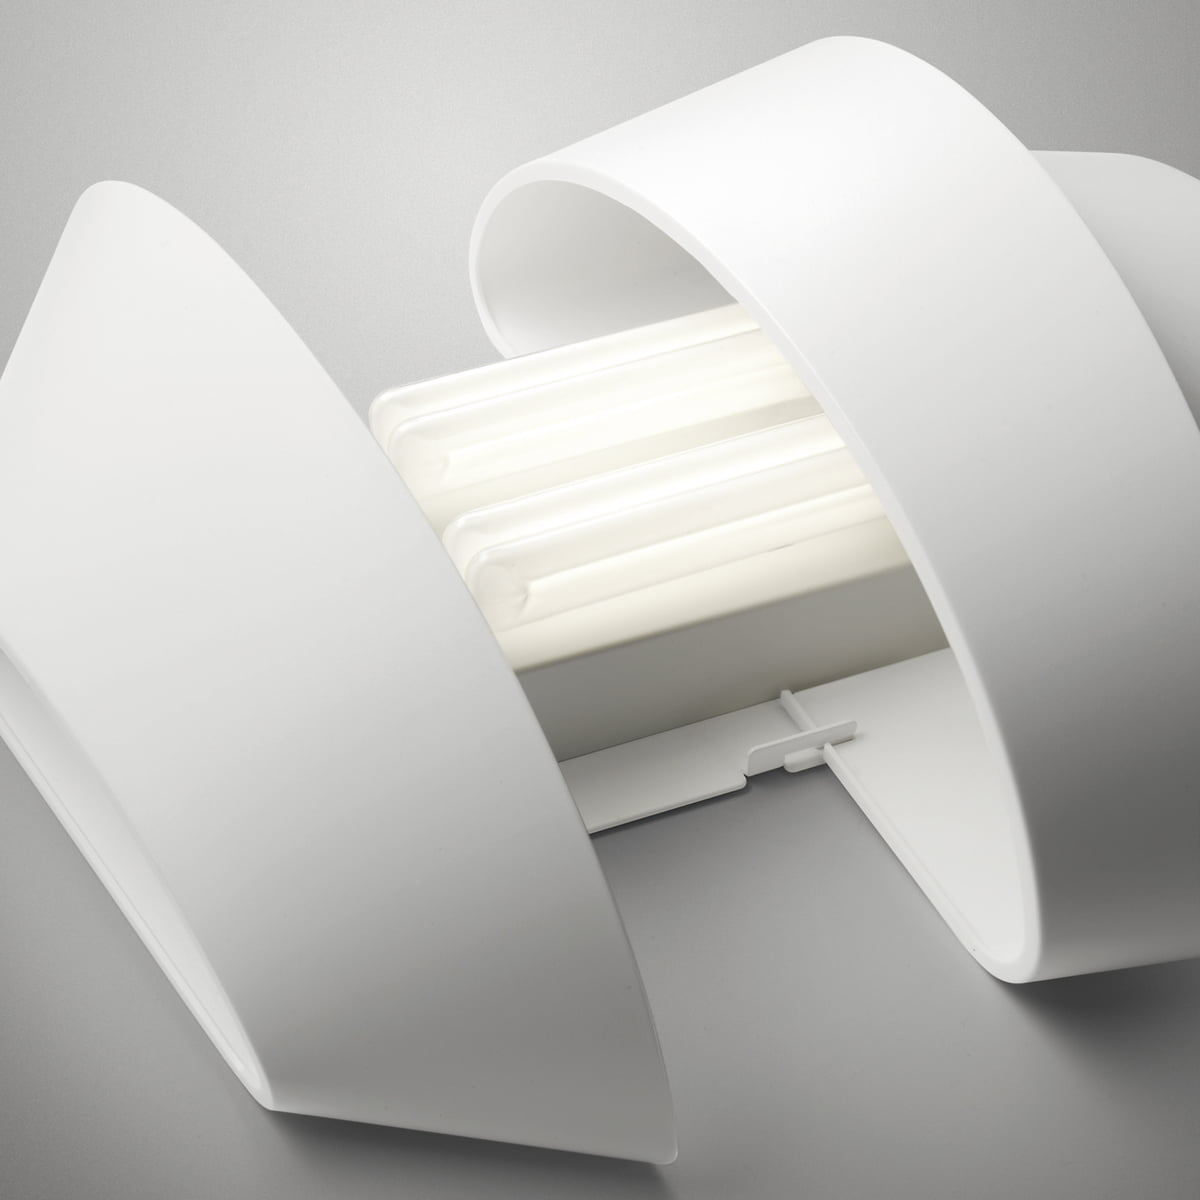 The Le Soleil Wall Lamp from Foscarini